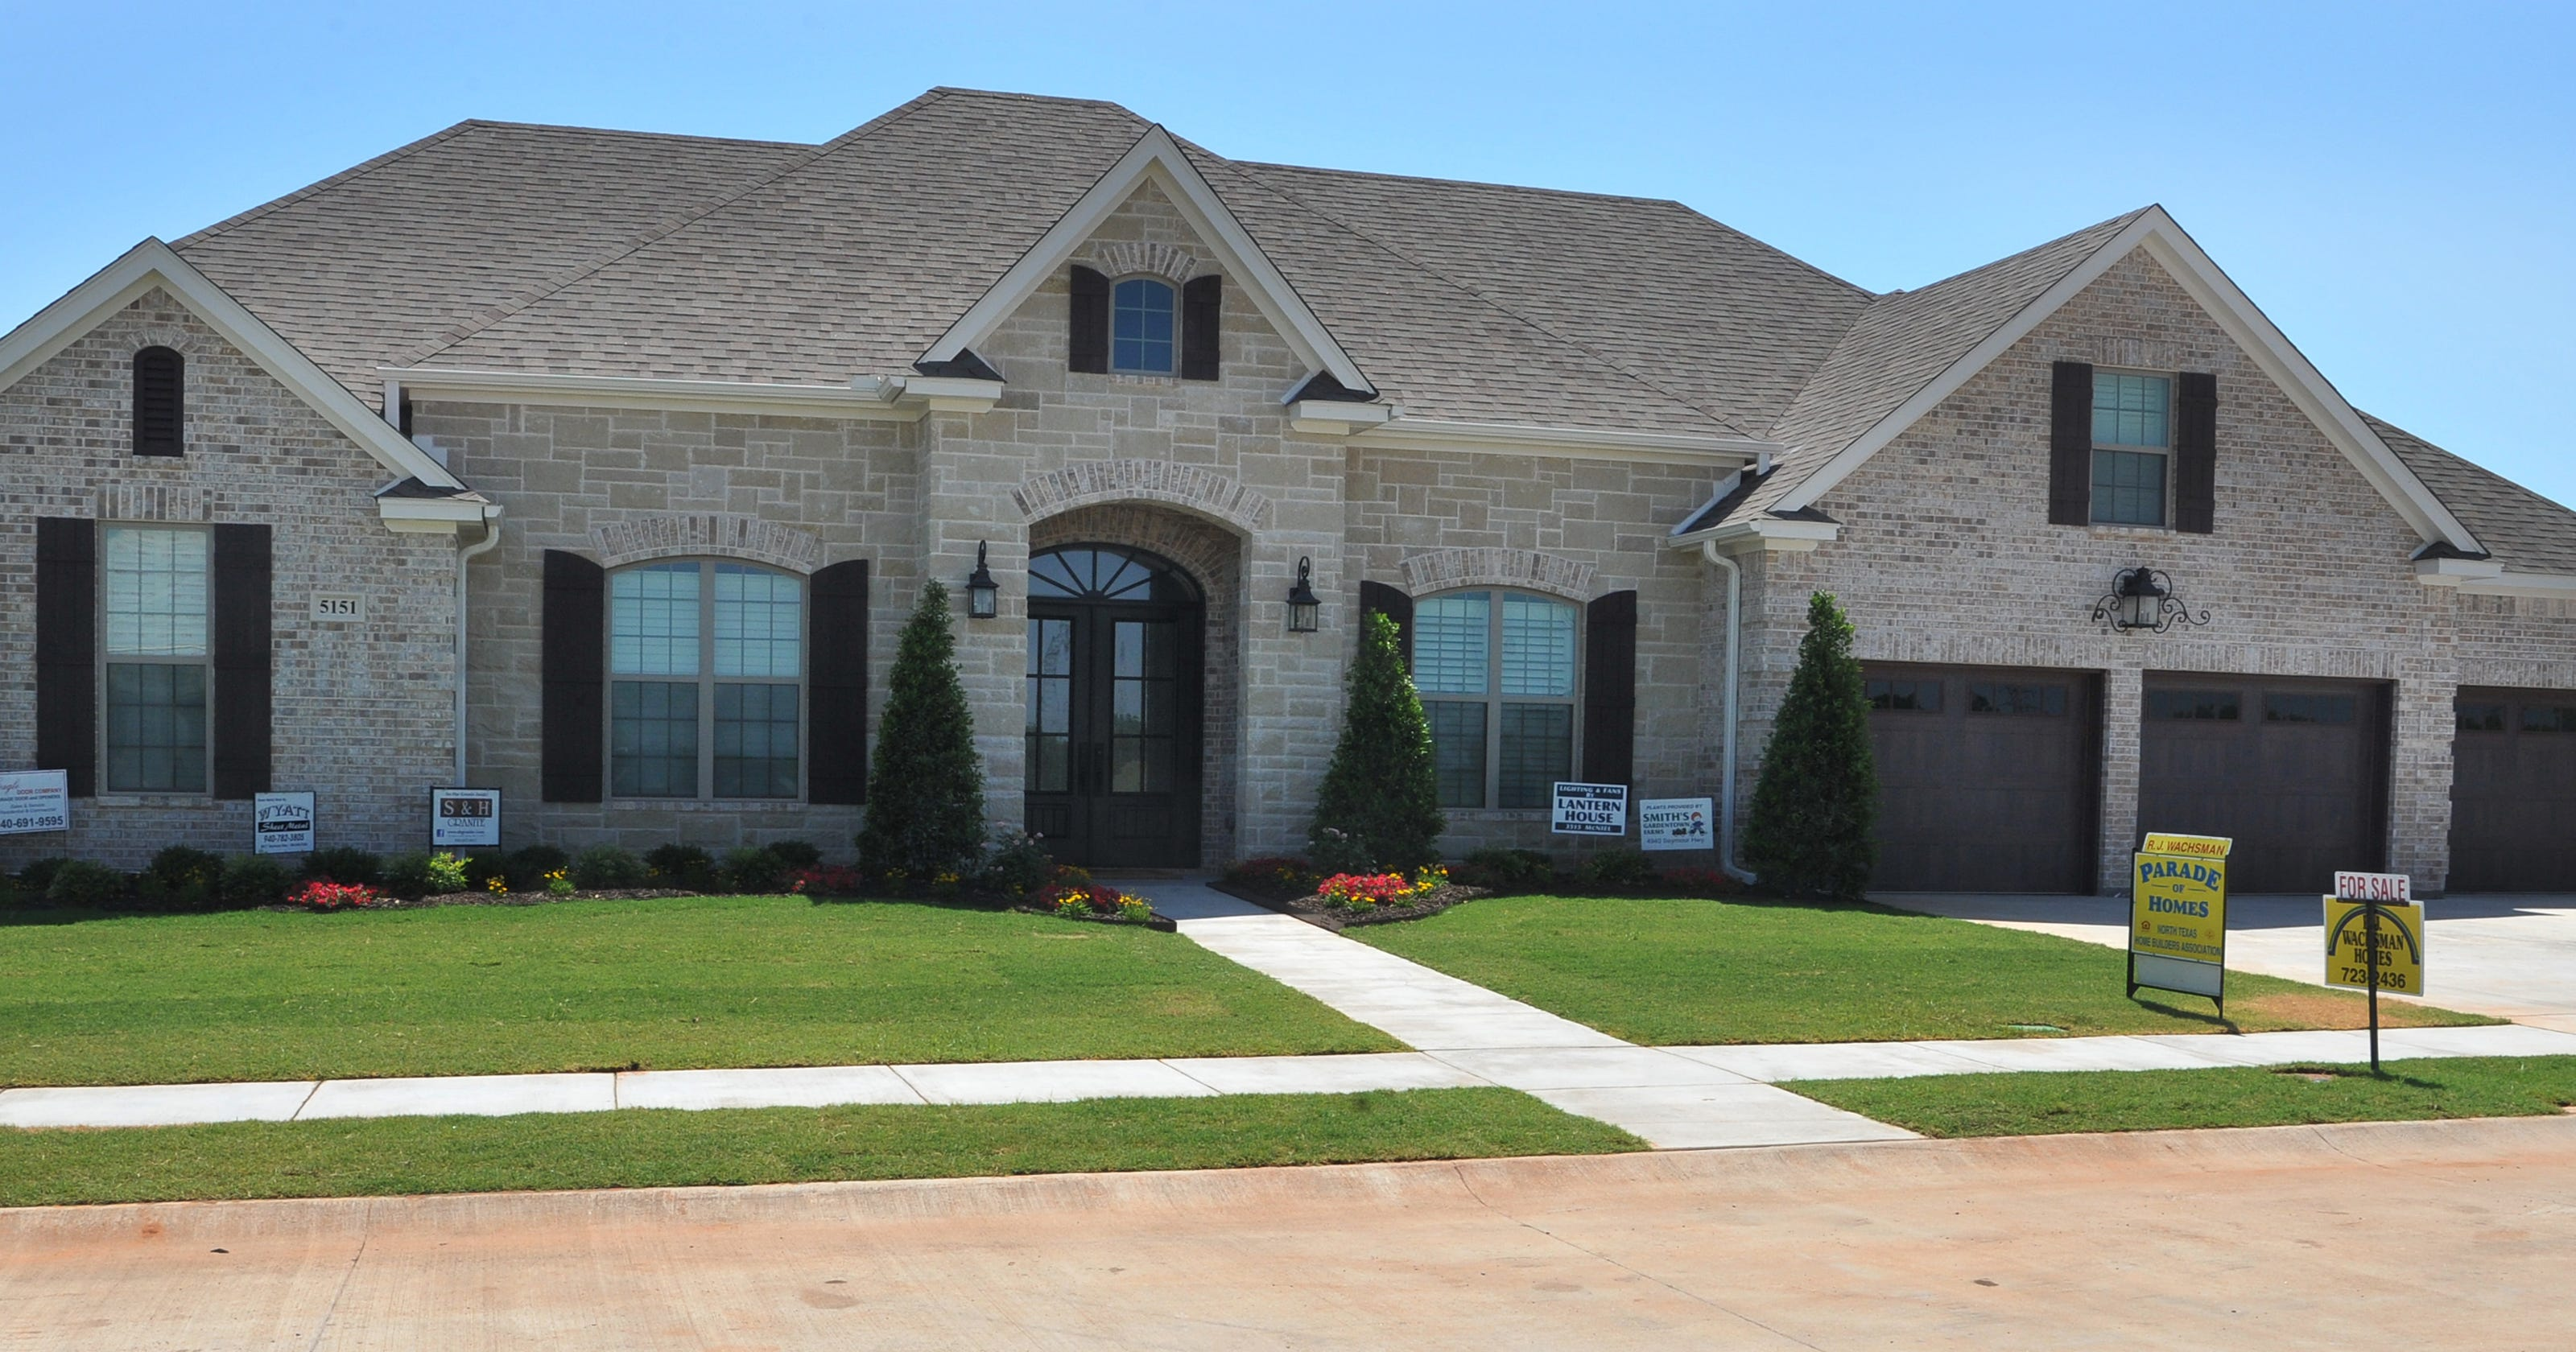 Parade Of Homes A Longstanding Benefit